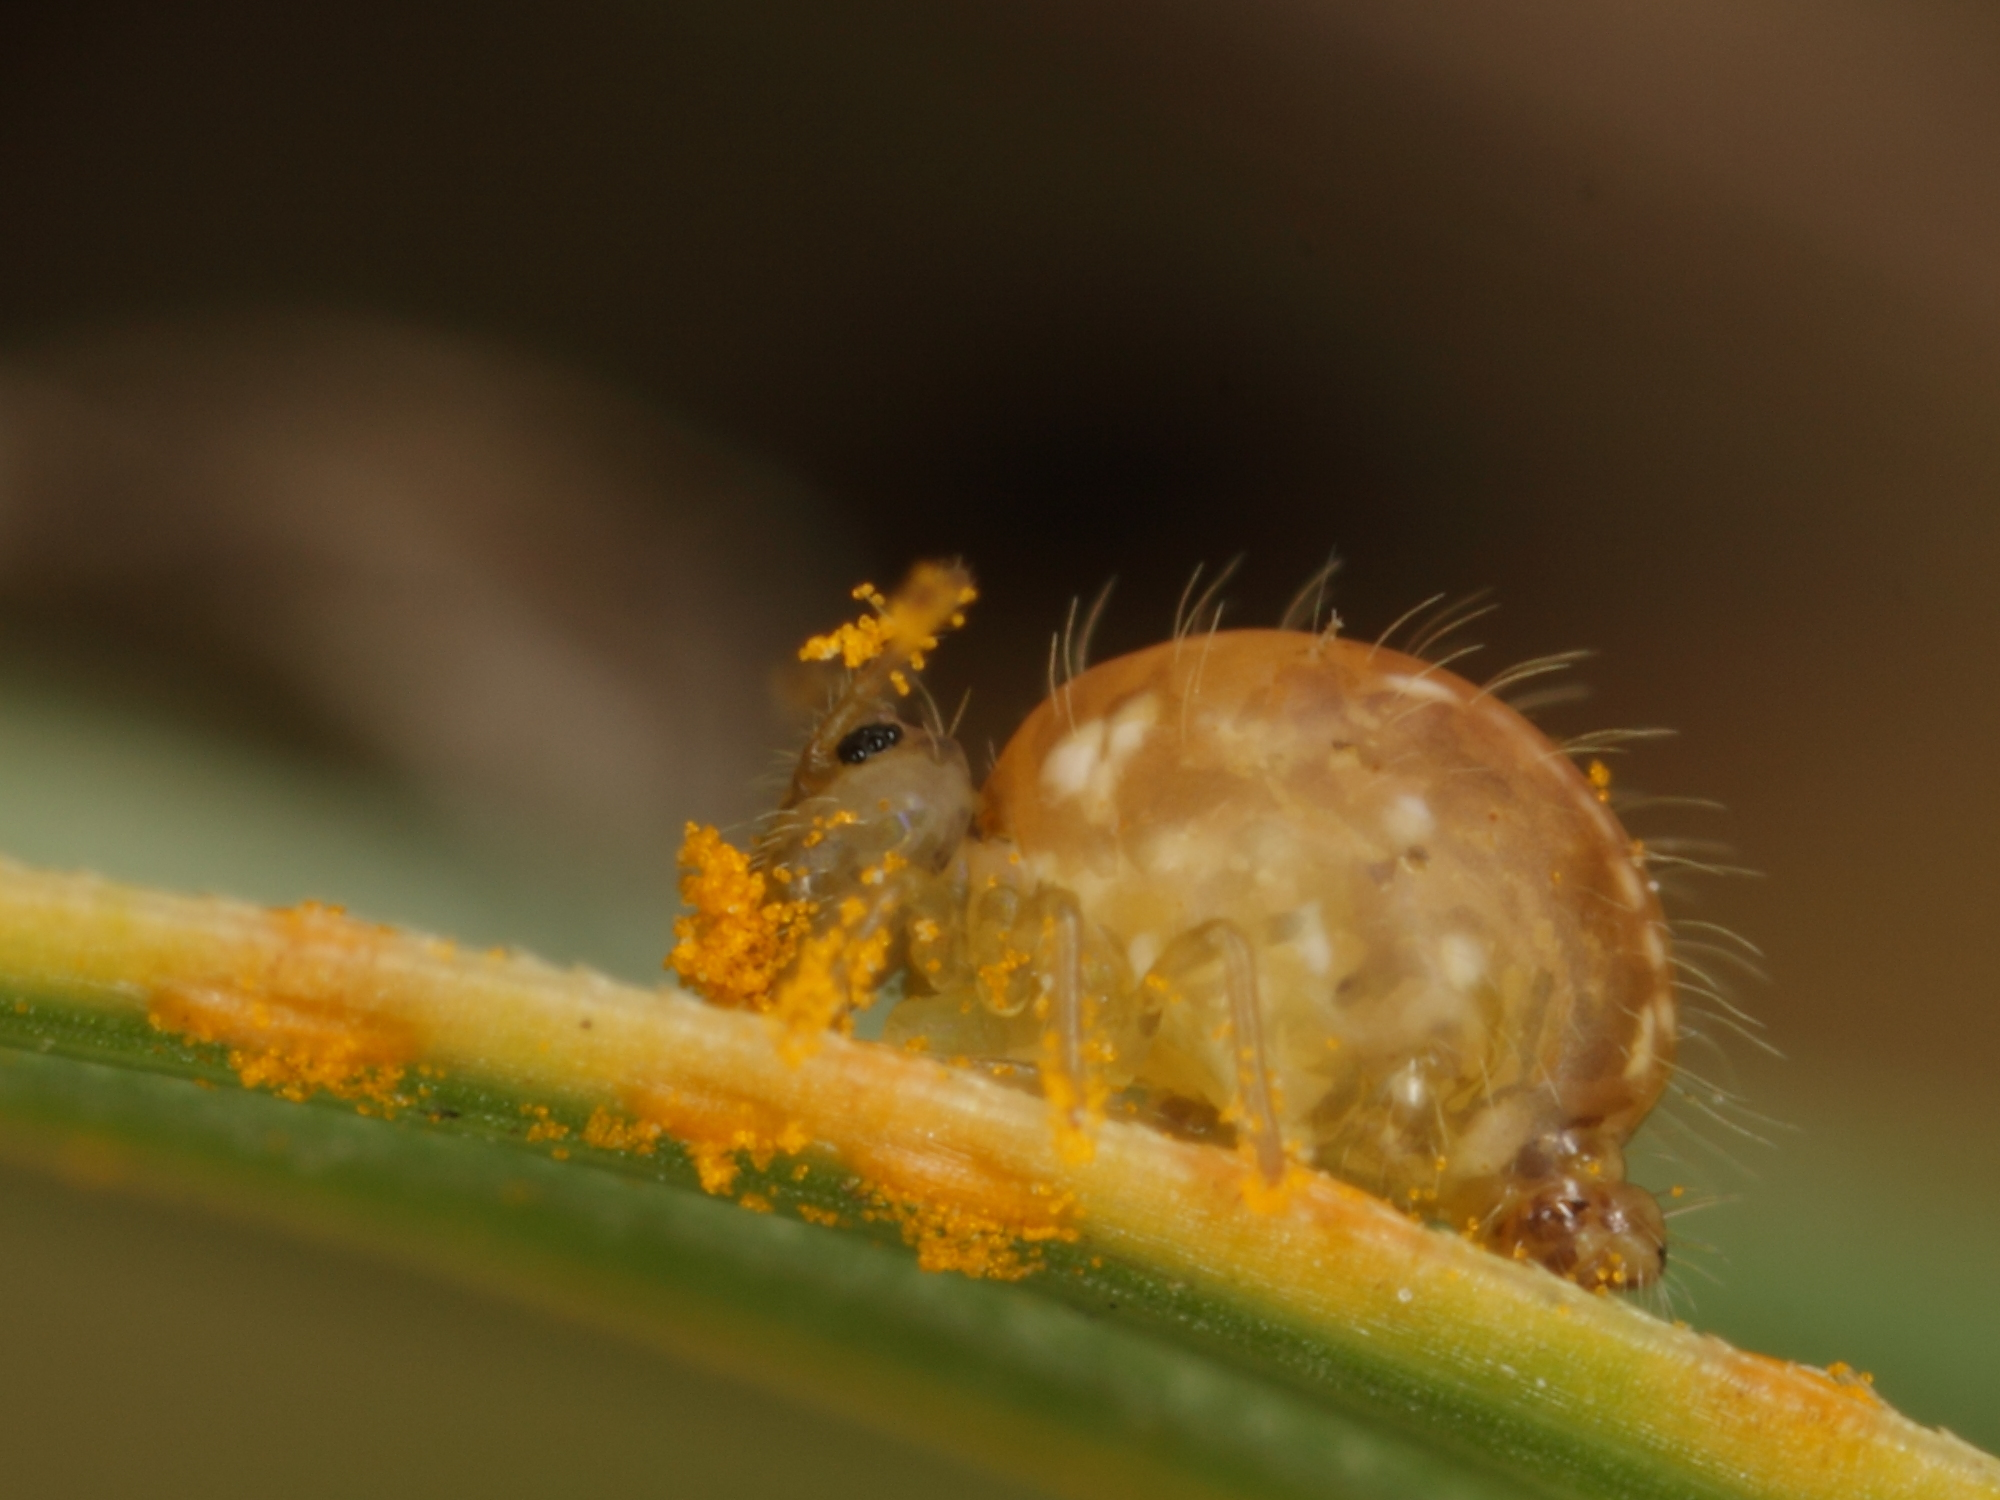 https://upload.wikimedia.org/wikipedia/commons/e/e5/Kugelspringer_%28Collembola-_Sminthuridae%29_fri%C3%9Ft_Pollen_-_Globular_Springtail_feeds_on_pollen_%289683050826%29.jpg